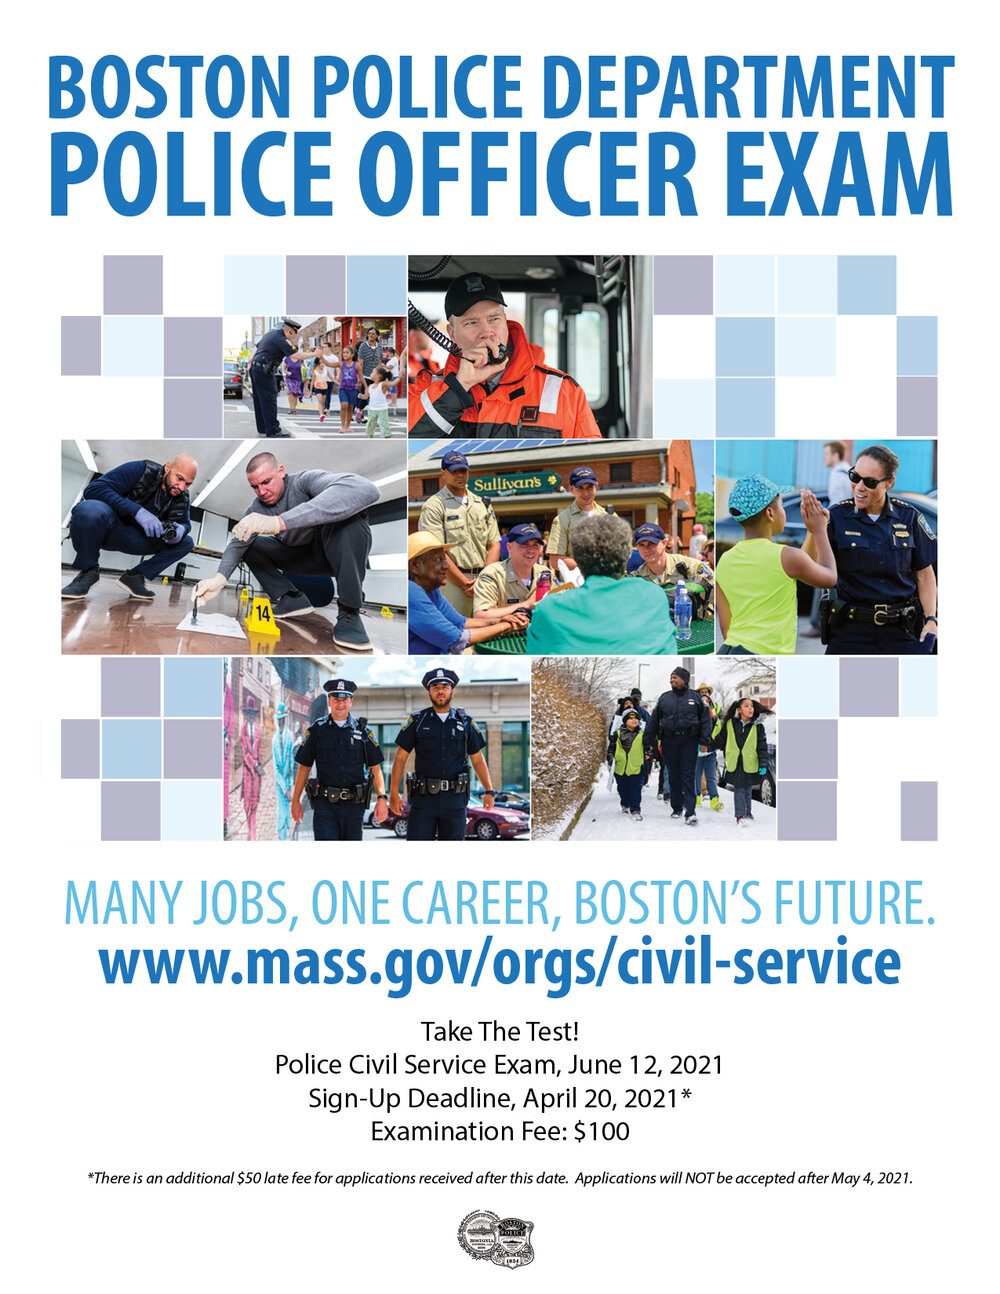 The Massachusetts Civil Service Exam for Police Officers is Scheduled for June 2021